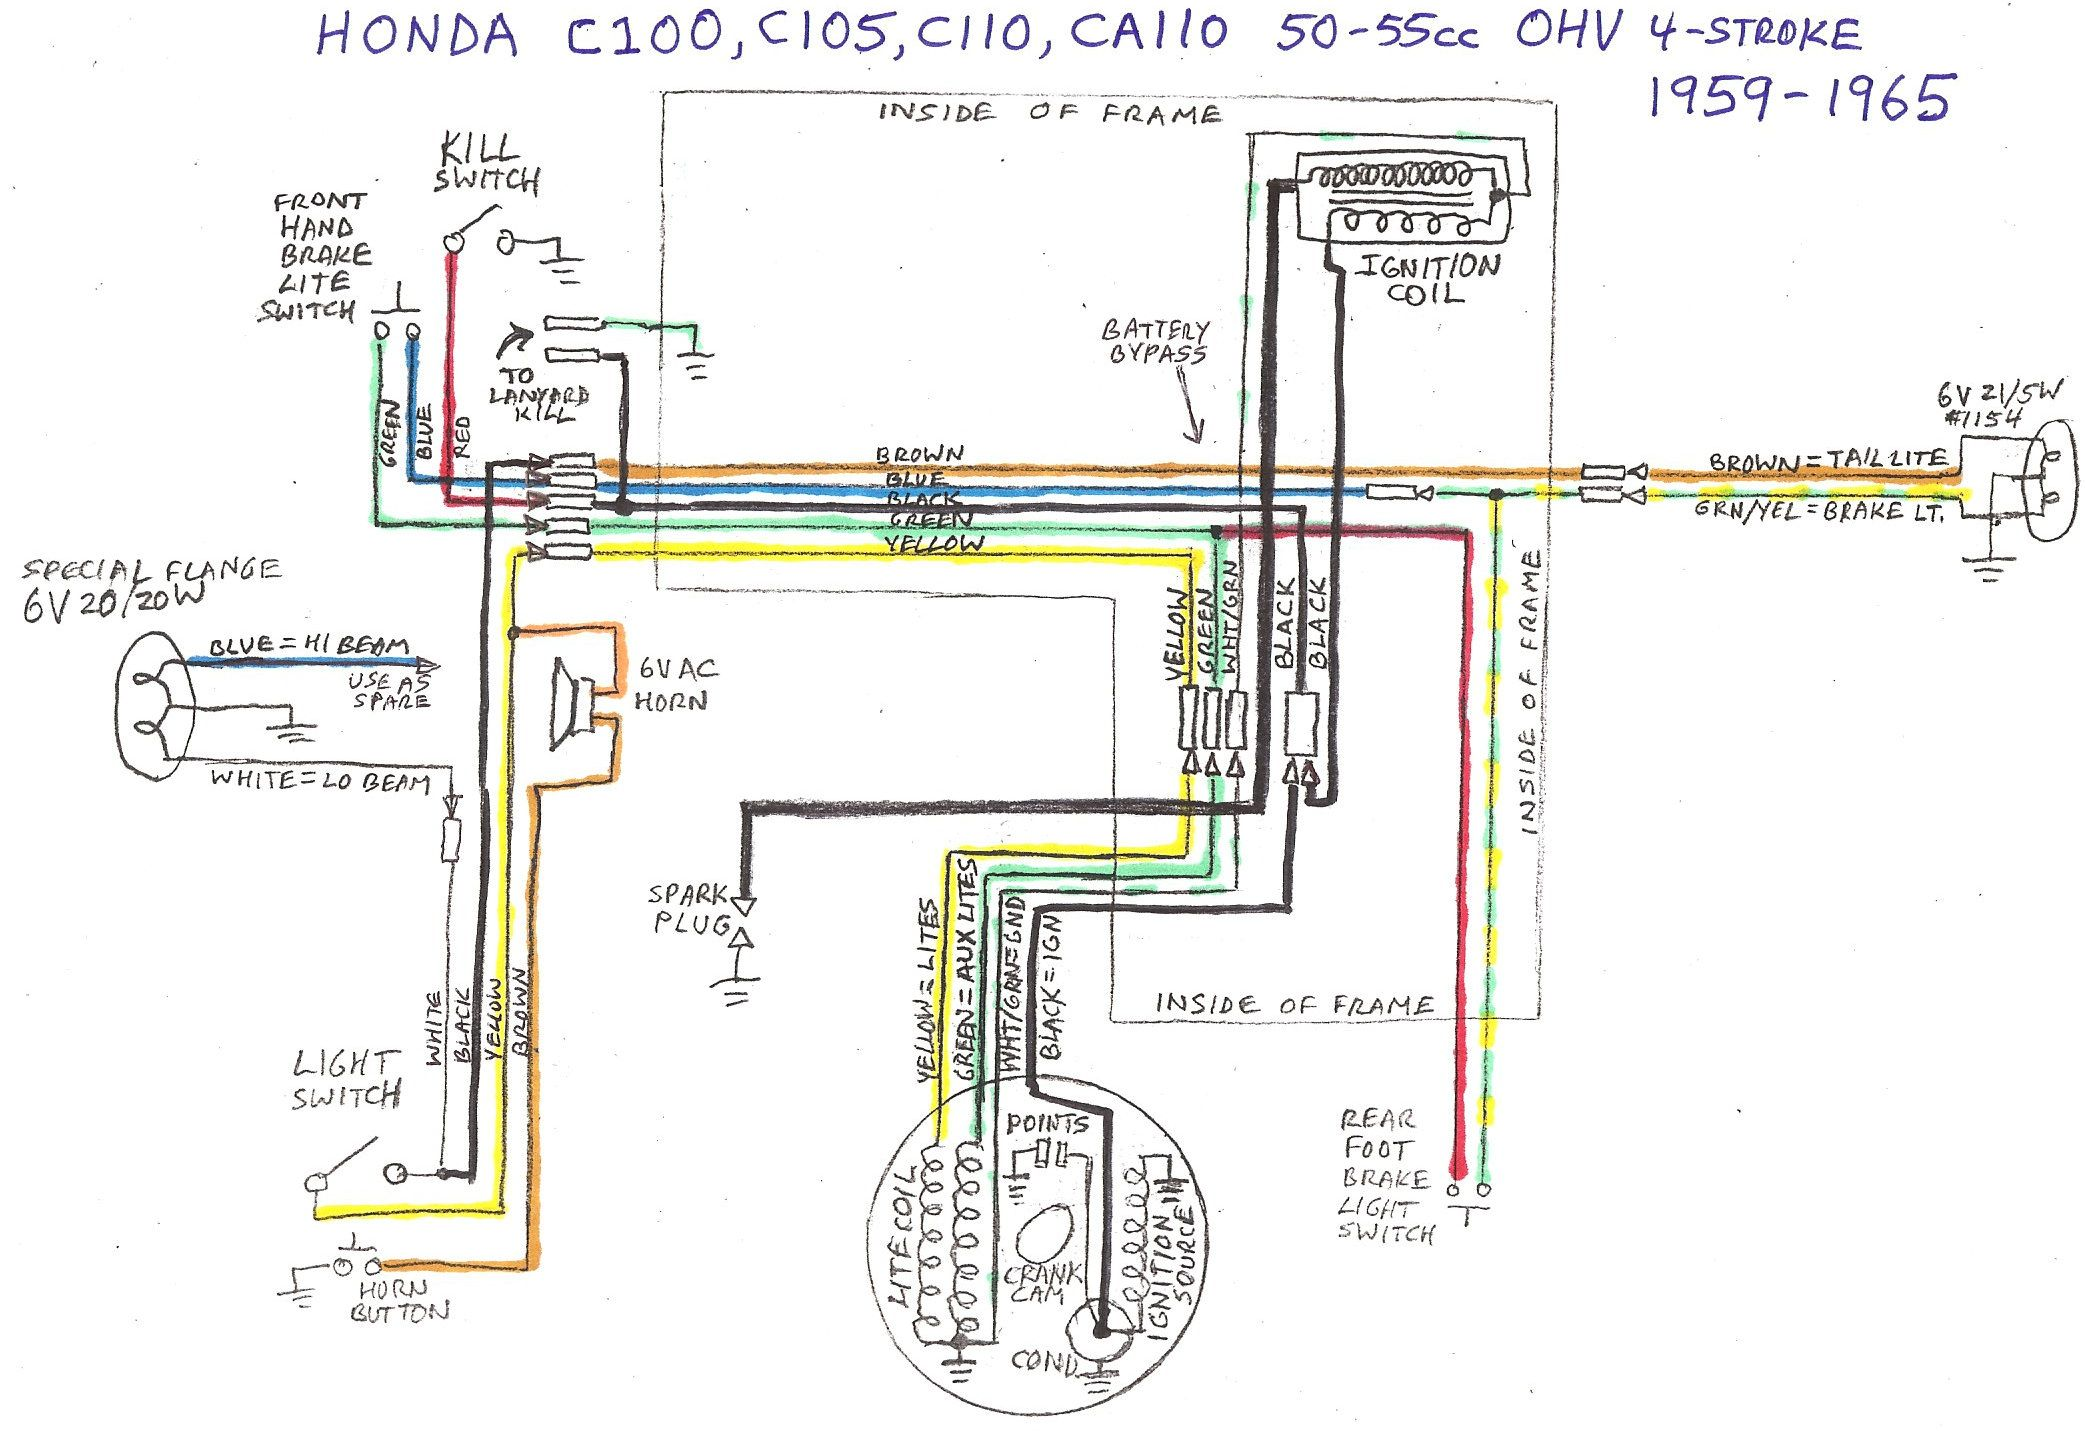 hight resolution of honda 70cc wiring wiring diagram honda 70cc pit bike honda circuit diagrams wiring diagram center mix